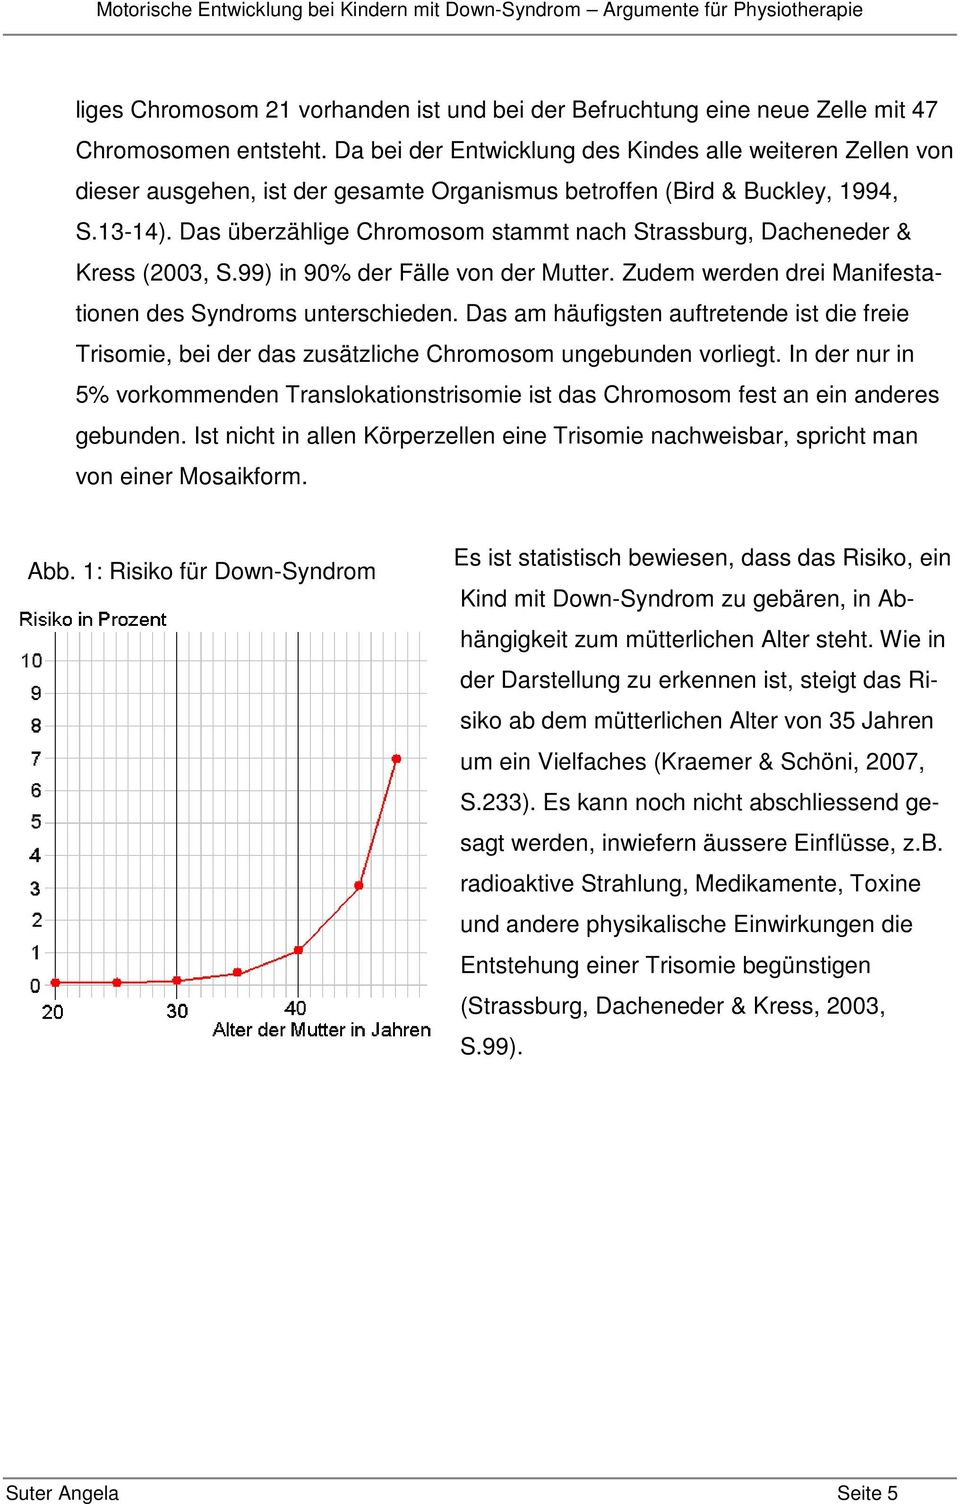 entwicklung down syndrom